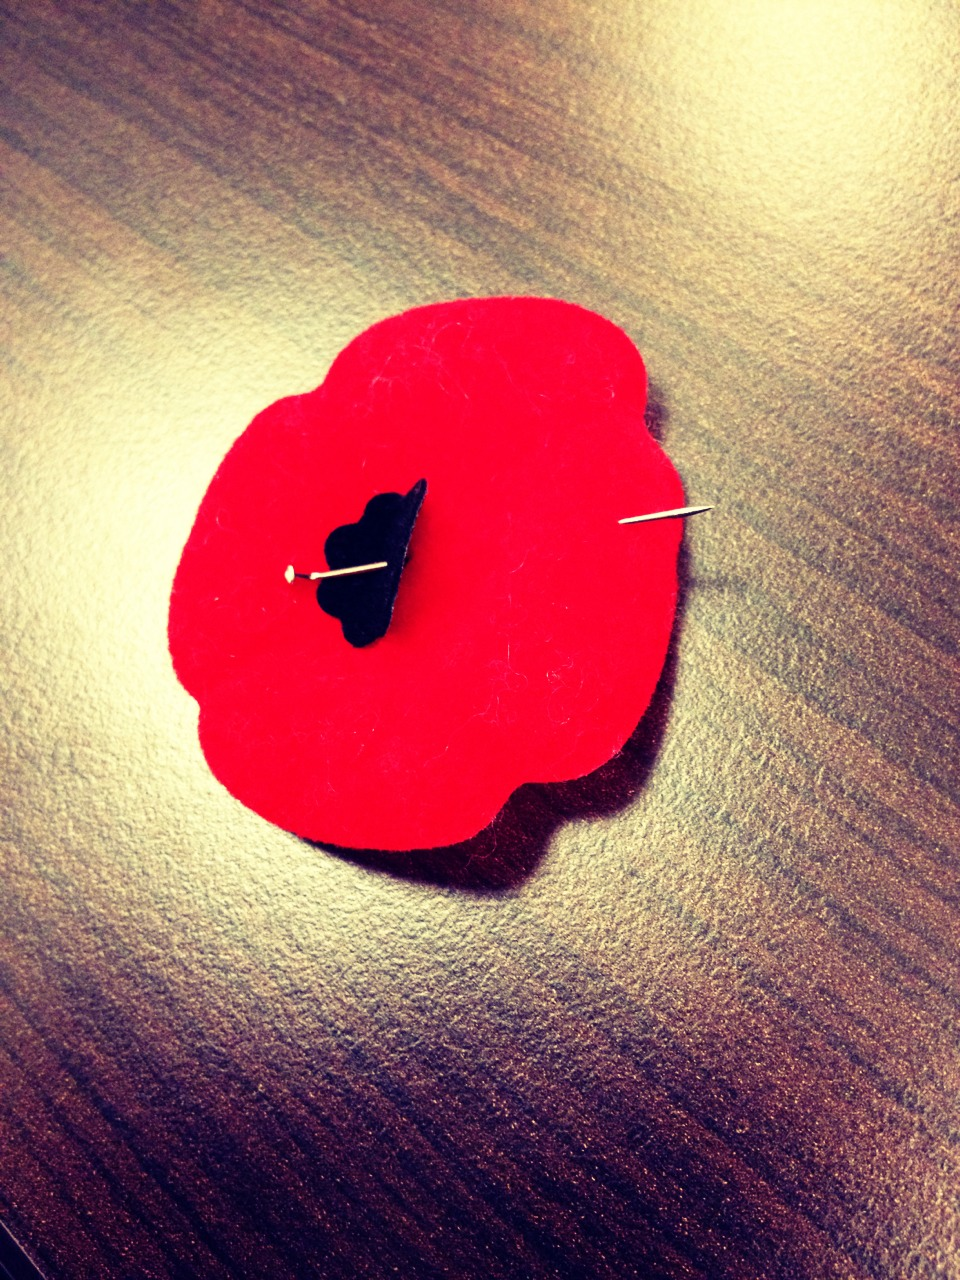 Slide pin through the poppy twice, stick close to the outer most edge of the poppy so it will keep a pretty shape.